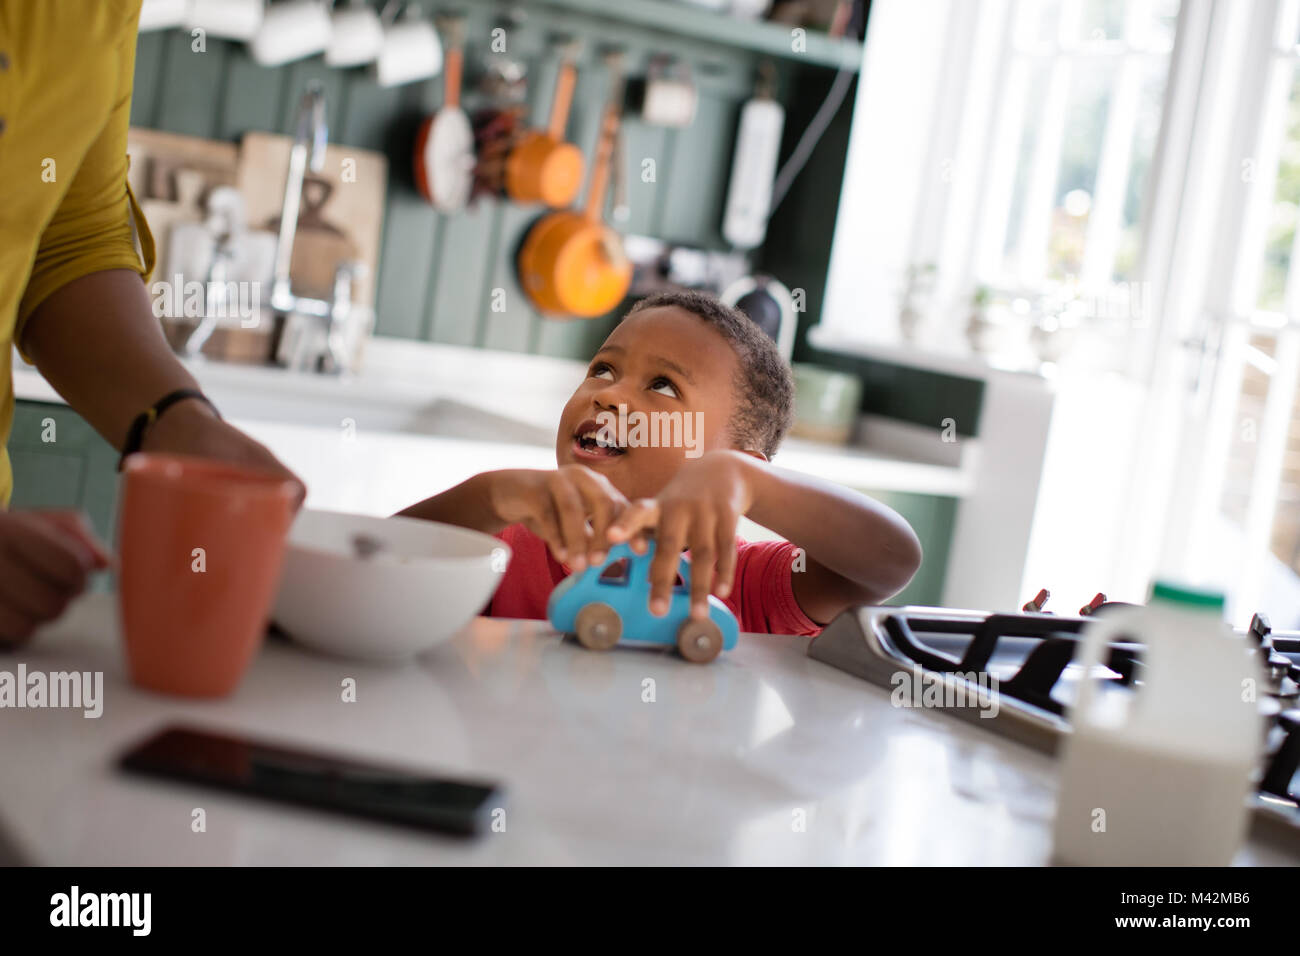 Boy playing at breakfast time - Stock Image